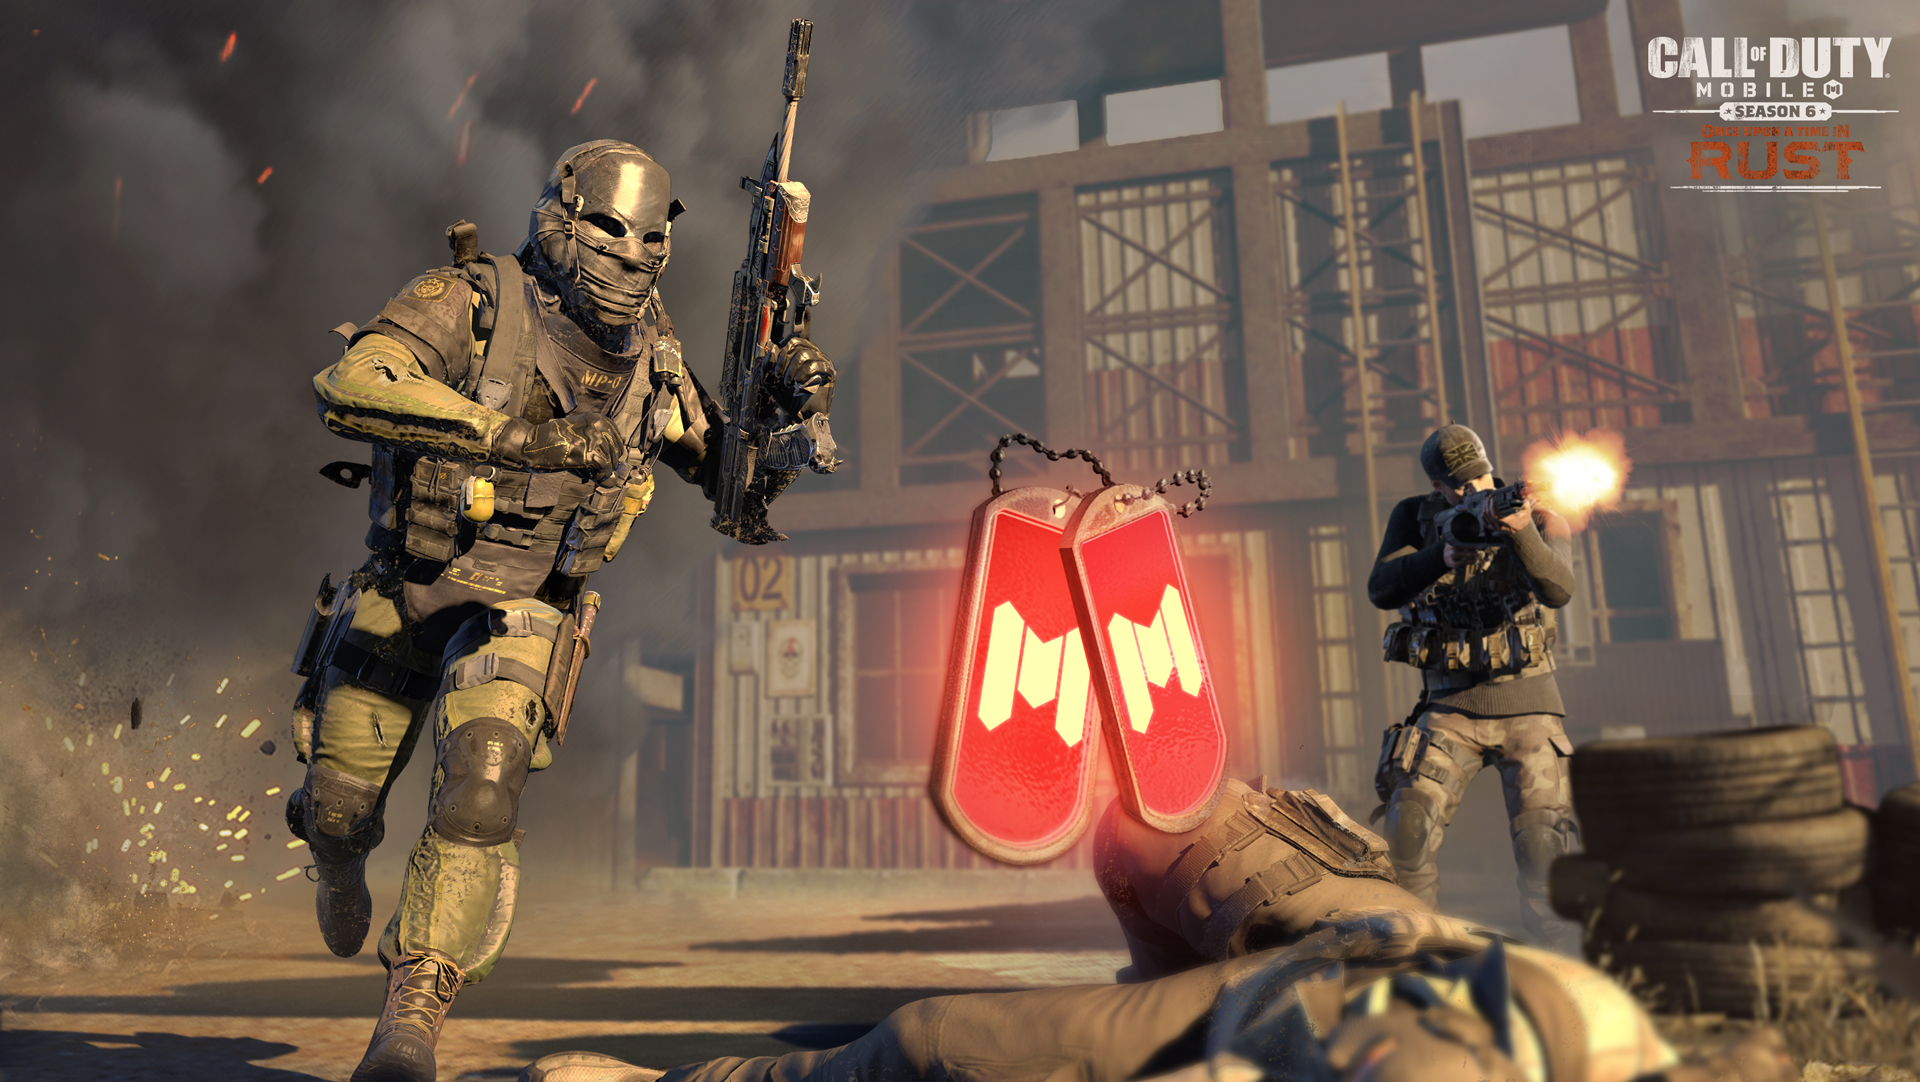 This Week in Call of Duty® - May 4 - Image 1